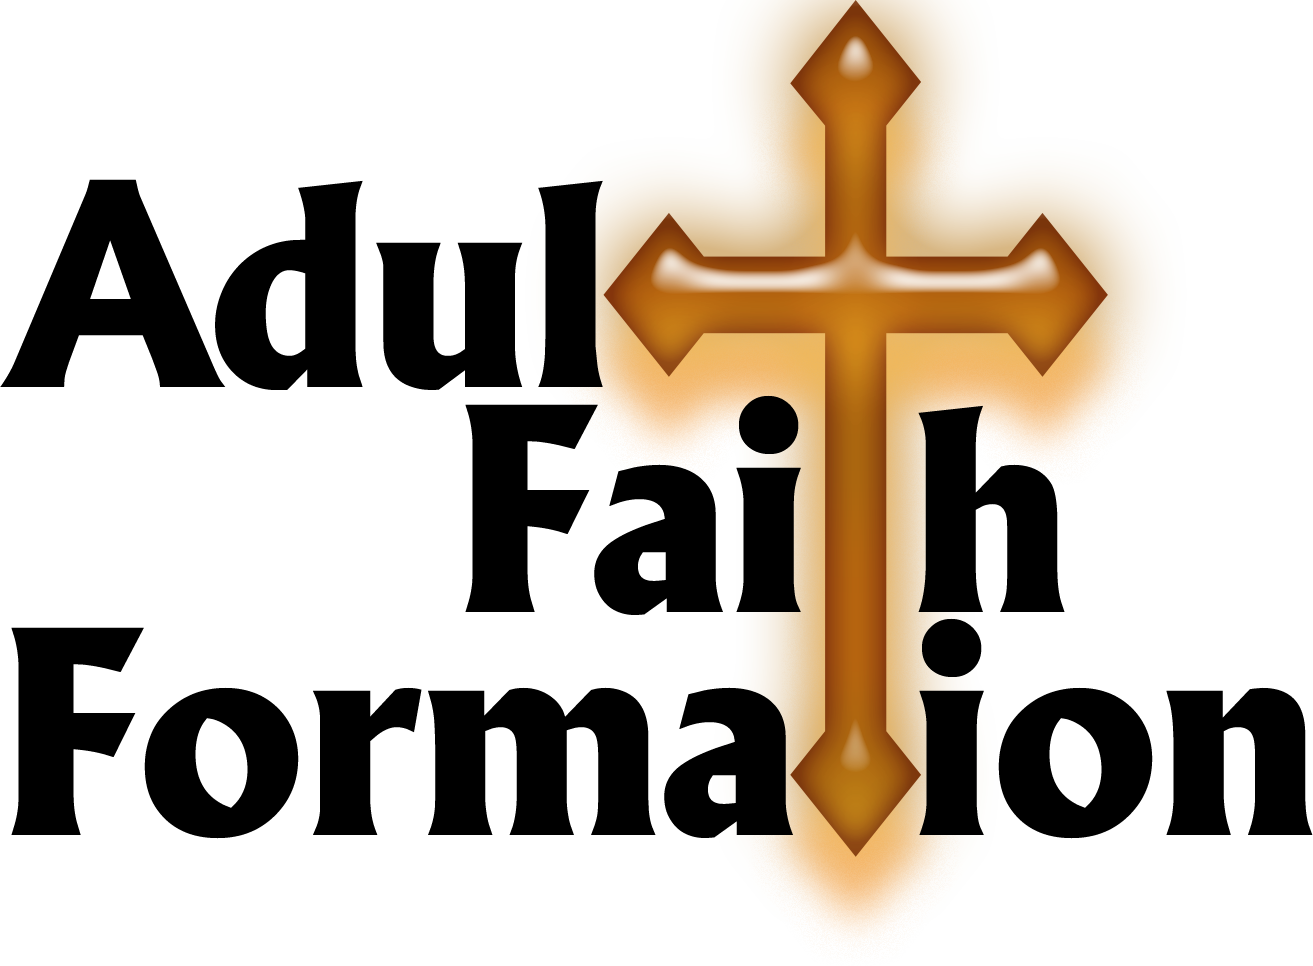 Funeral clipart catholic funeral. Faith formation